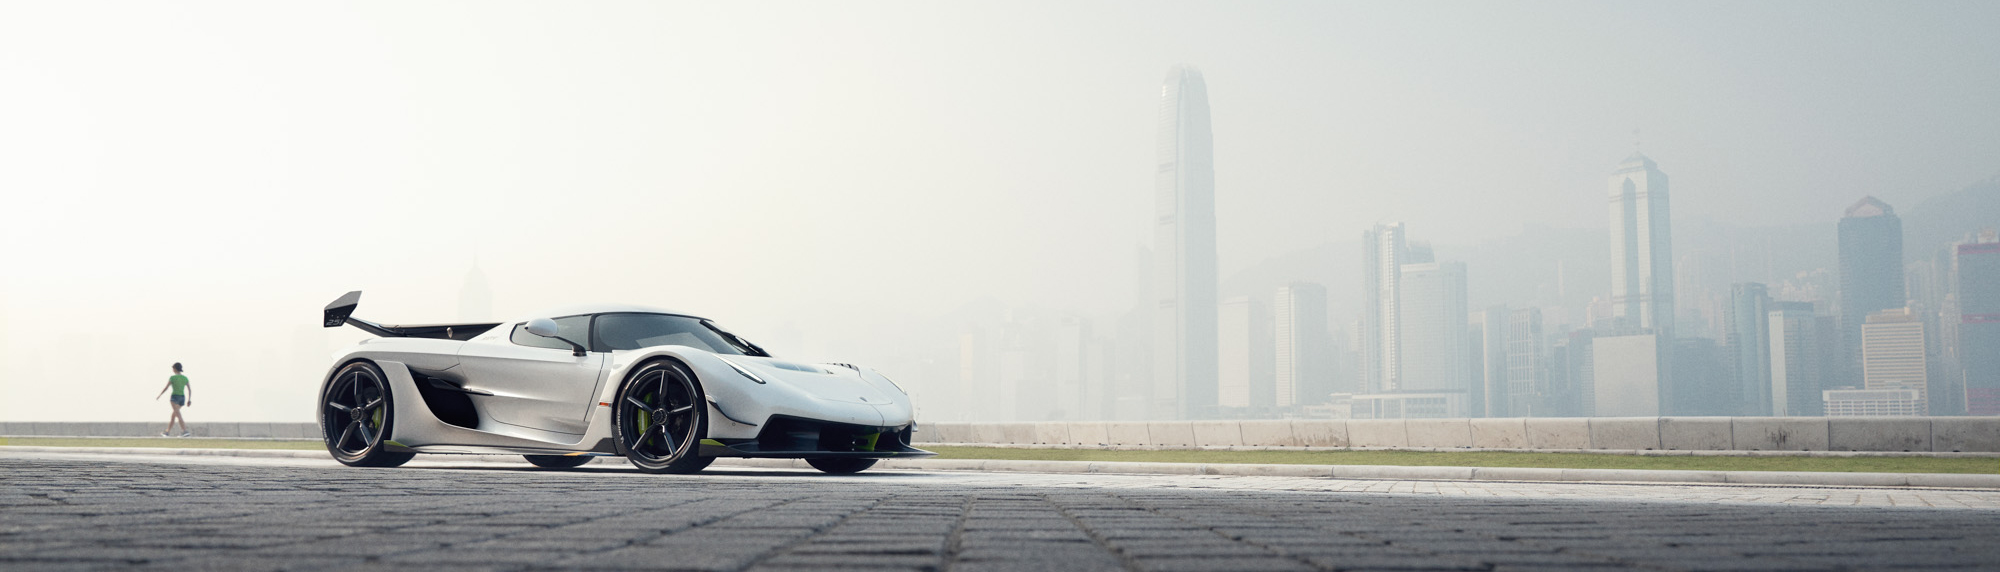 Discover the one of a kind Koenigsegg vehicles for sale at Koenigsegg Boston!